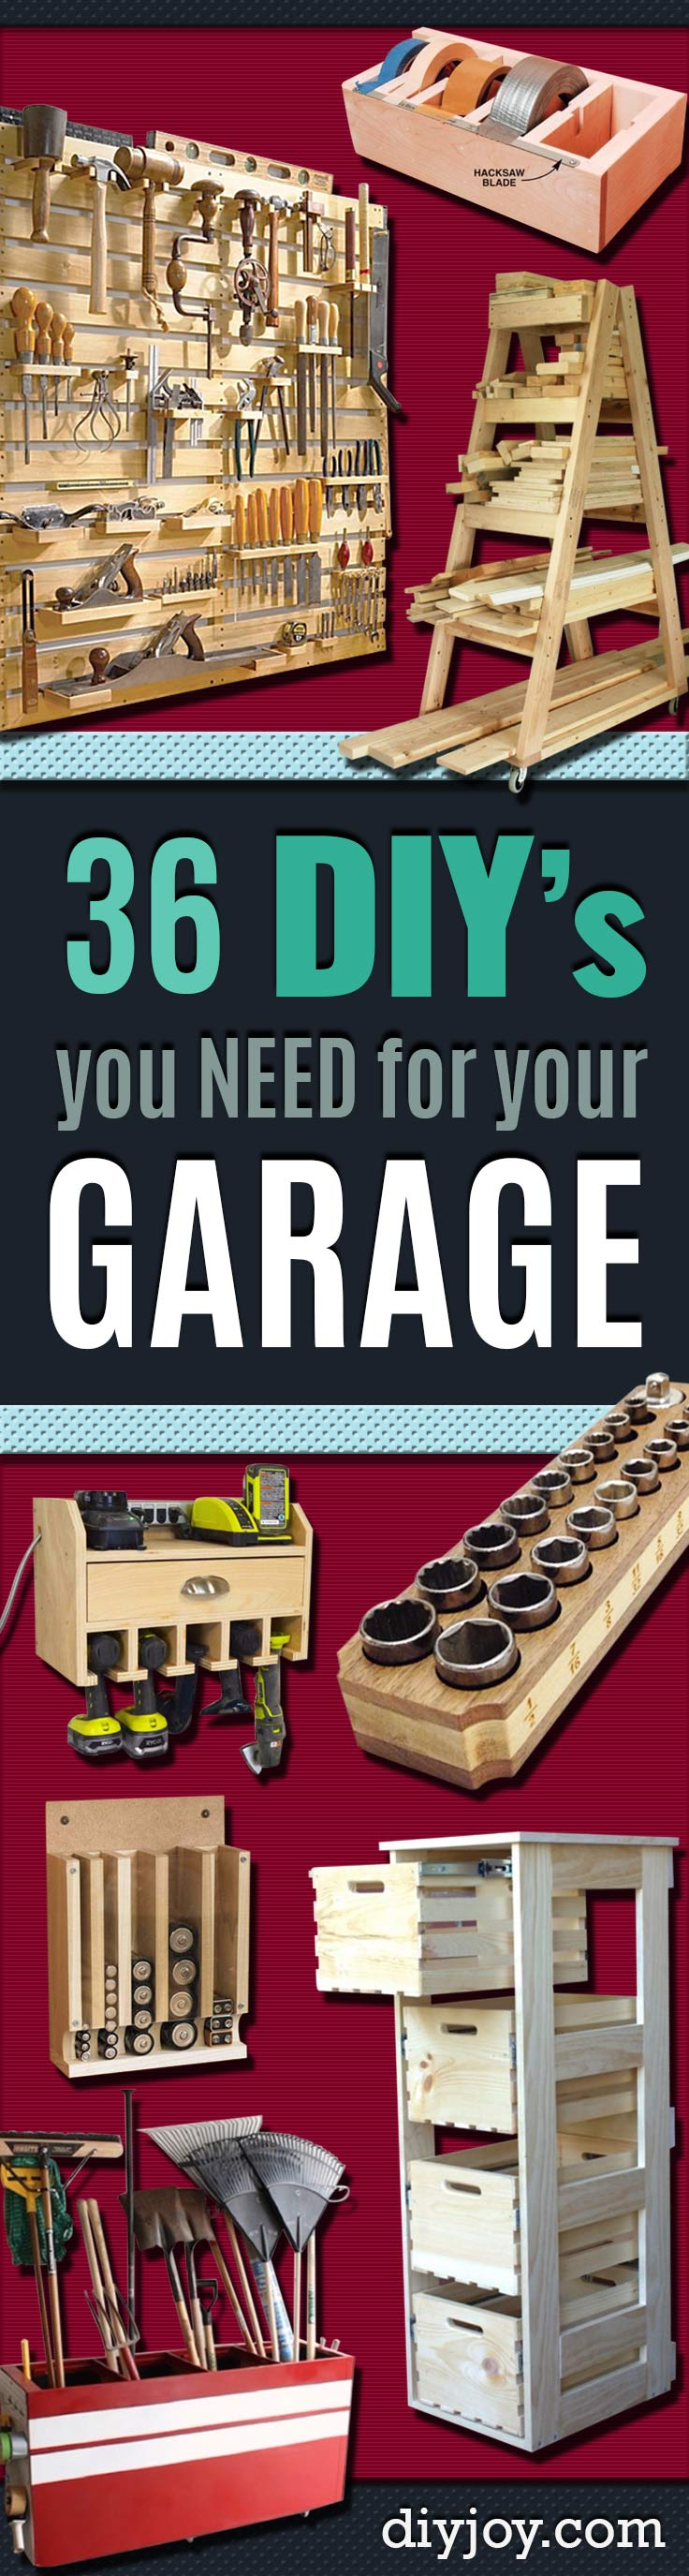 DIY Projects Your Garage Needs -Do It Yourself Garage Makeover Ideas Include Storage, Organization, Shelves, and Project Plans for Cool New Garage Decor